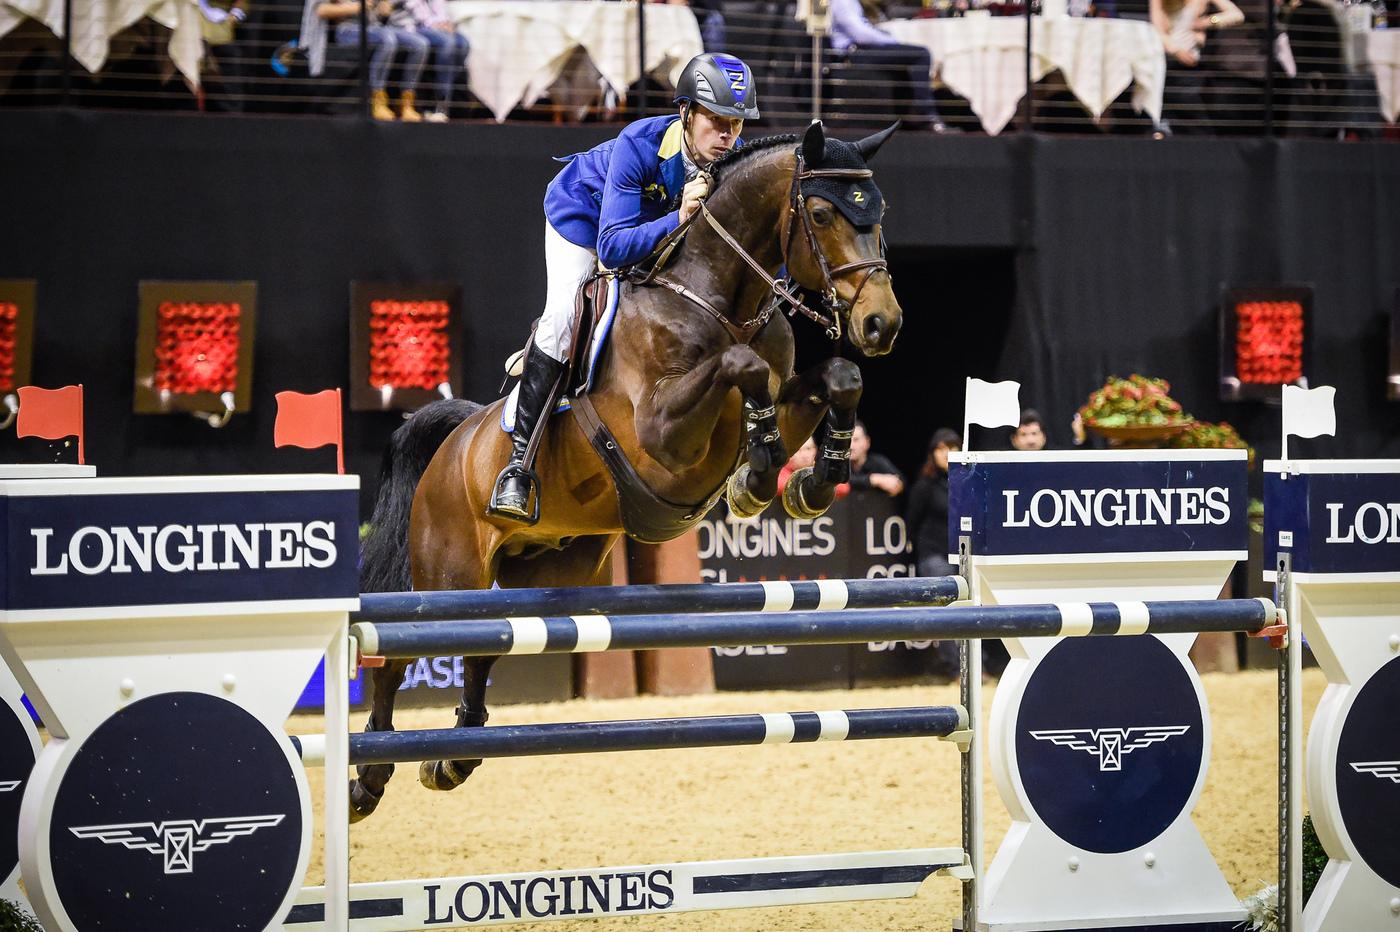 Longines Show Jumping Event: Christian Ahlmann wins the Longines Grand Prix in Basel 5